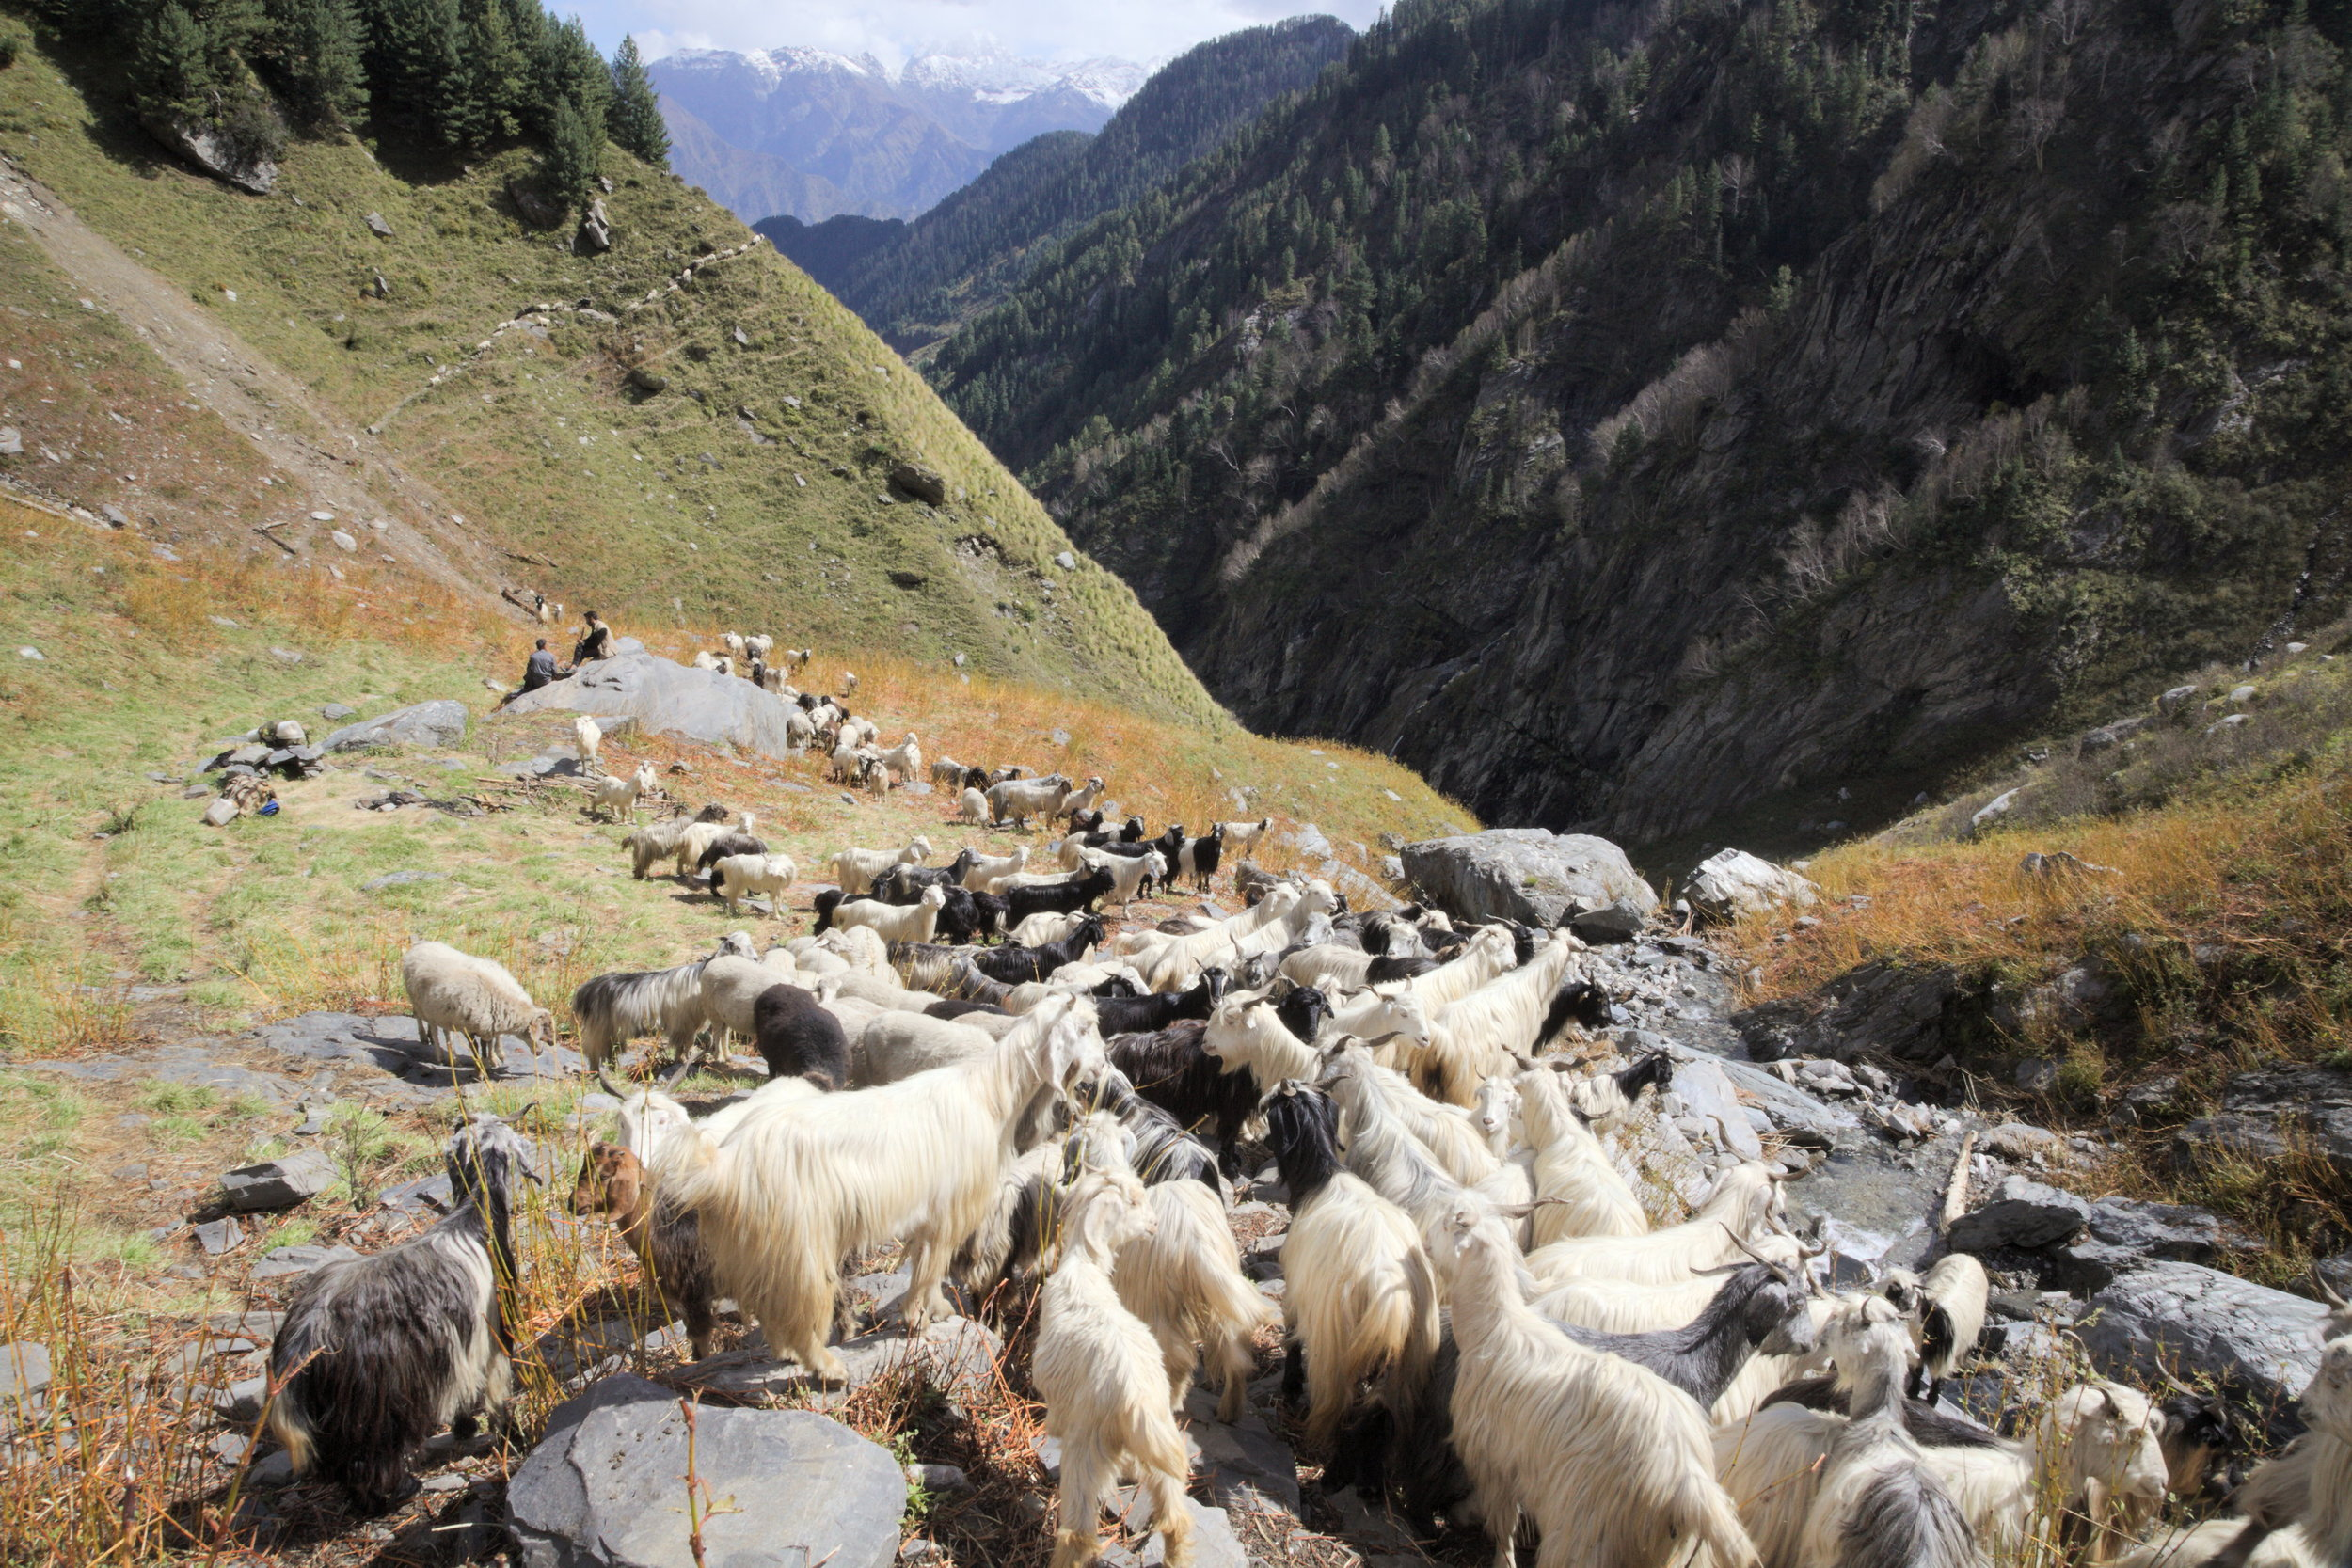 A flock in Chamba district moving south for the winter.